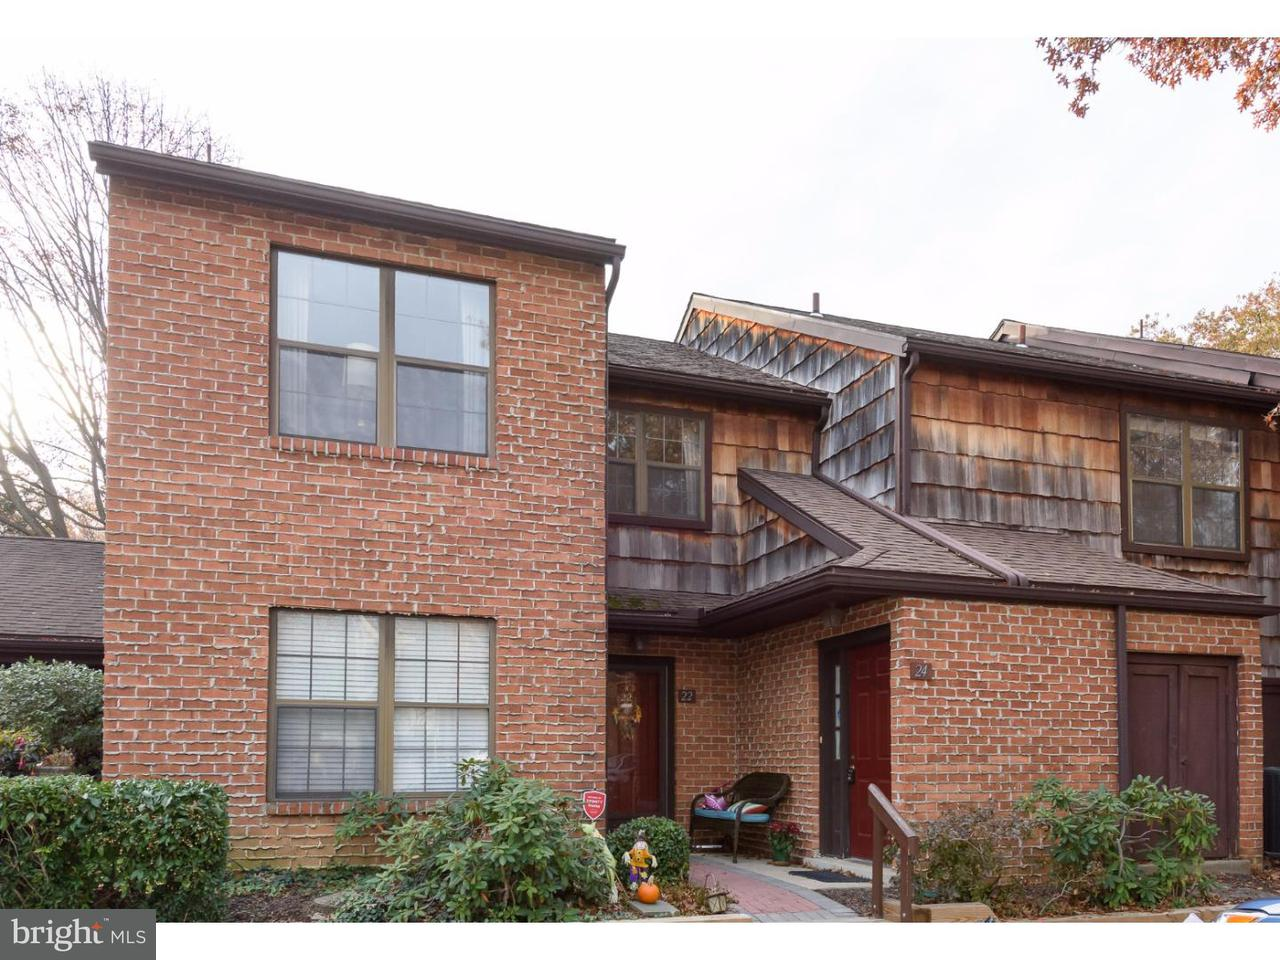 Condominium for Sale at 24 WITHERSPOON CT #127 Chesterbrook, Pennsylvania 19087 United States